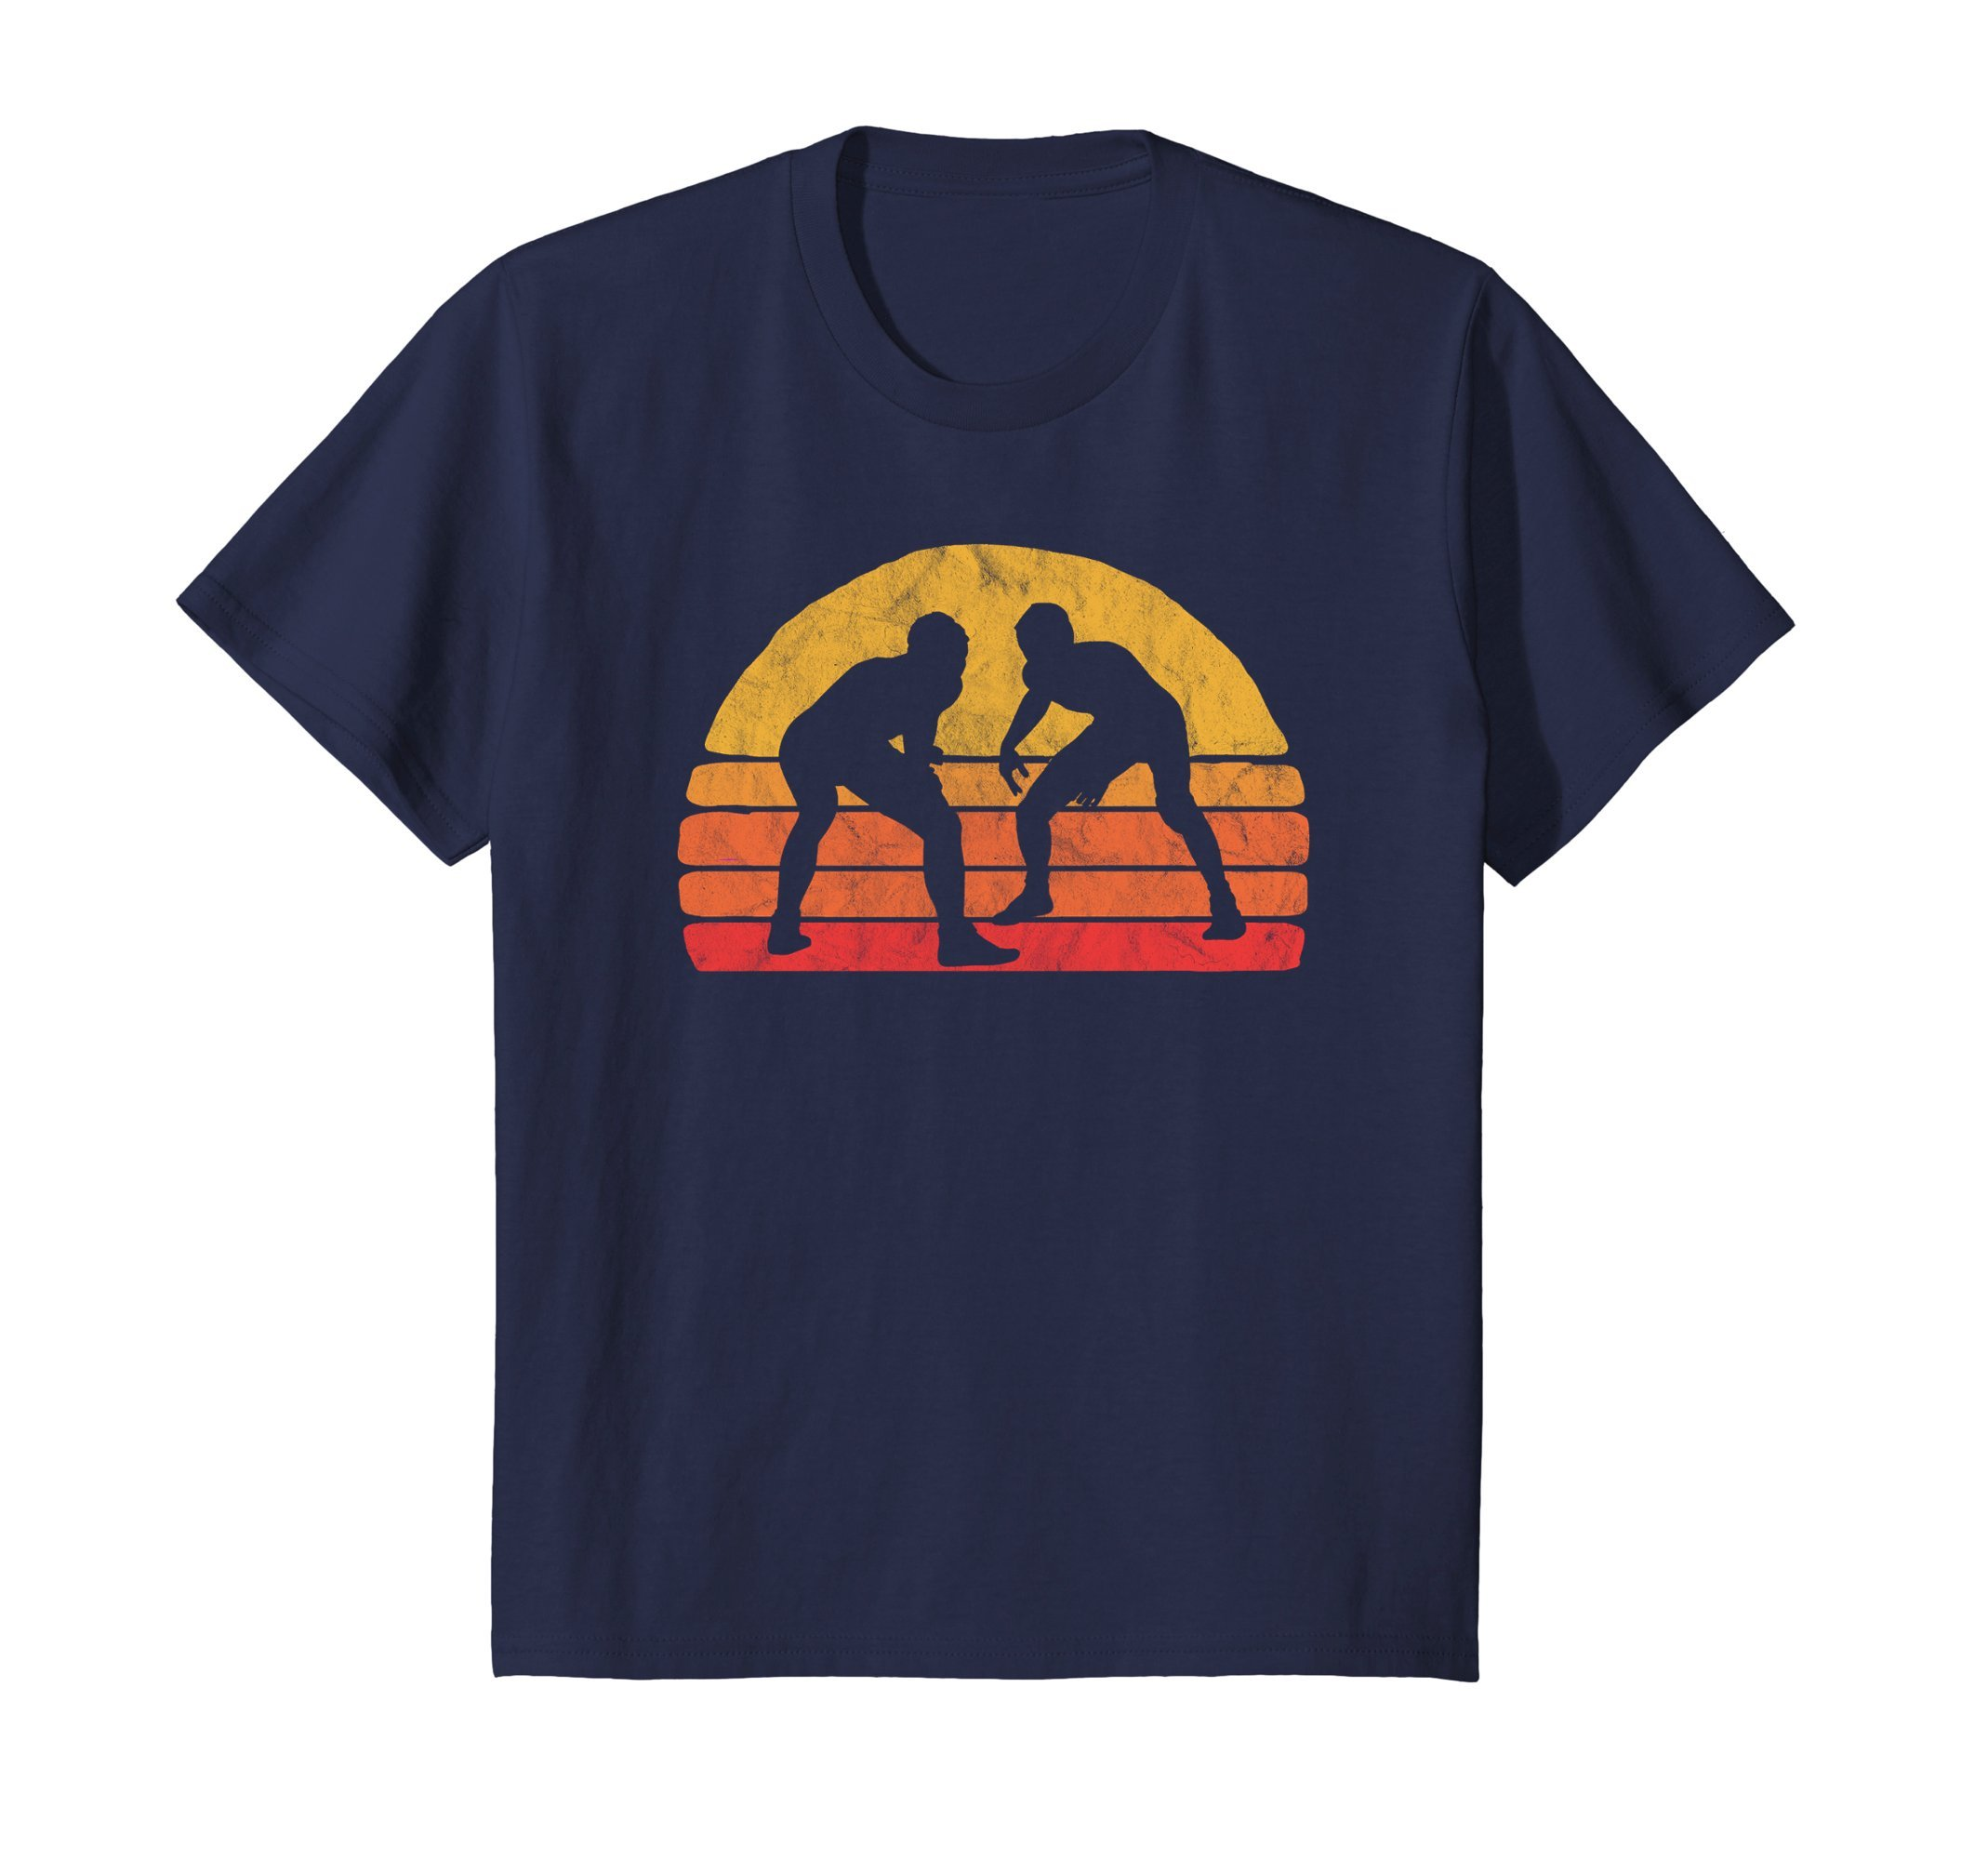 Kids Vintage Wrestling Graphic T-Shirt - Two Wrestlers and Sun 10 Navy by Get To The Mat Wrestle Shirts